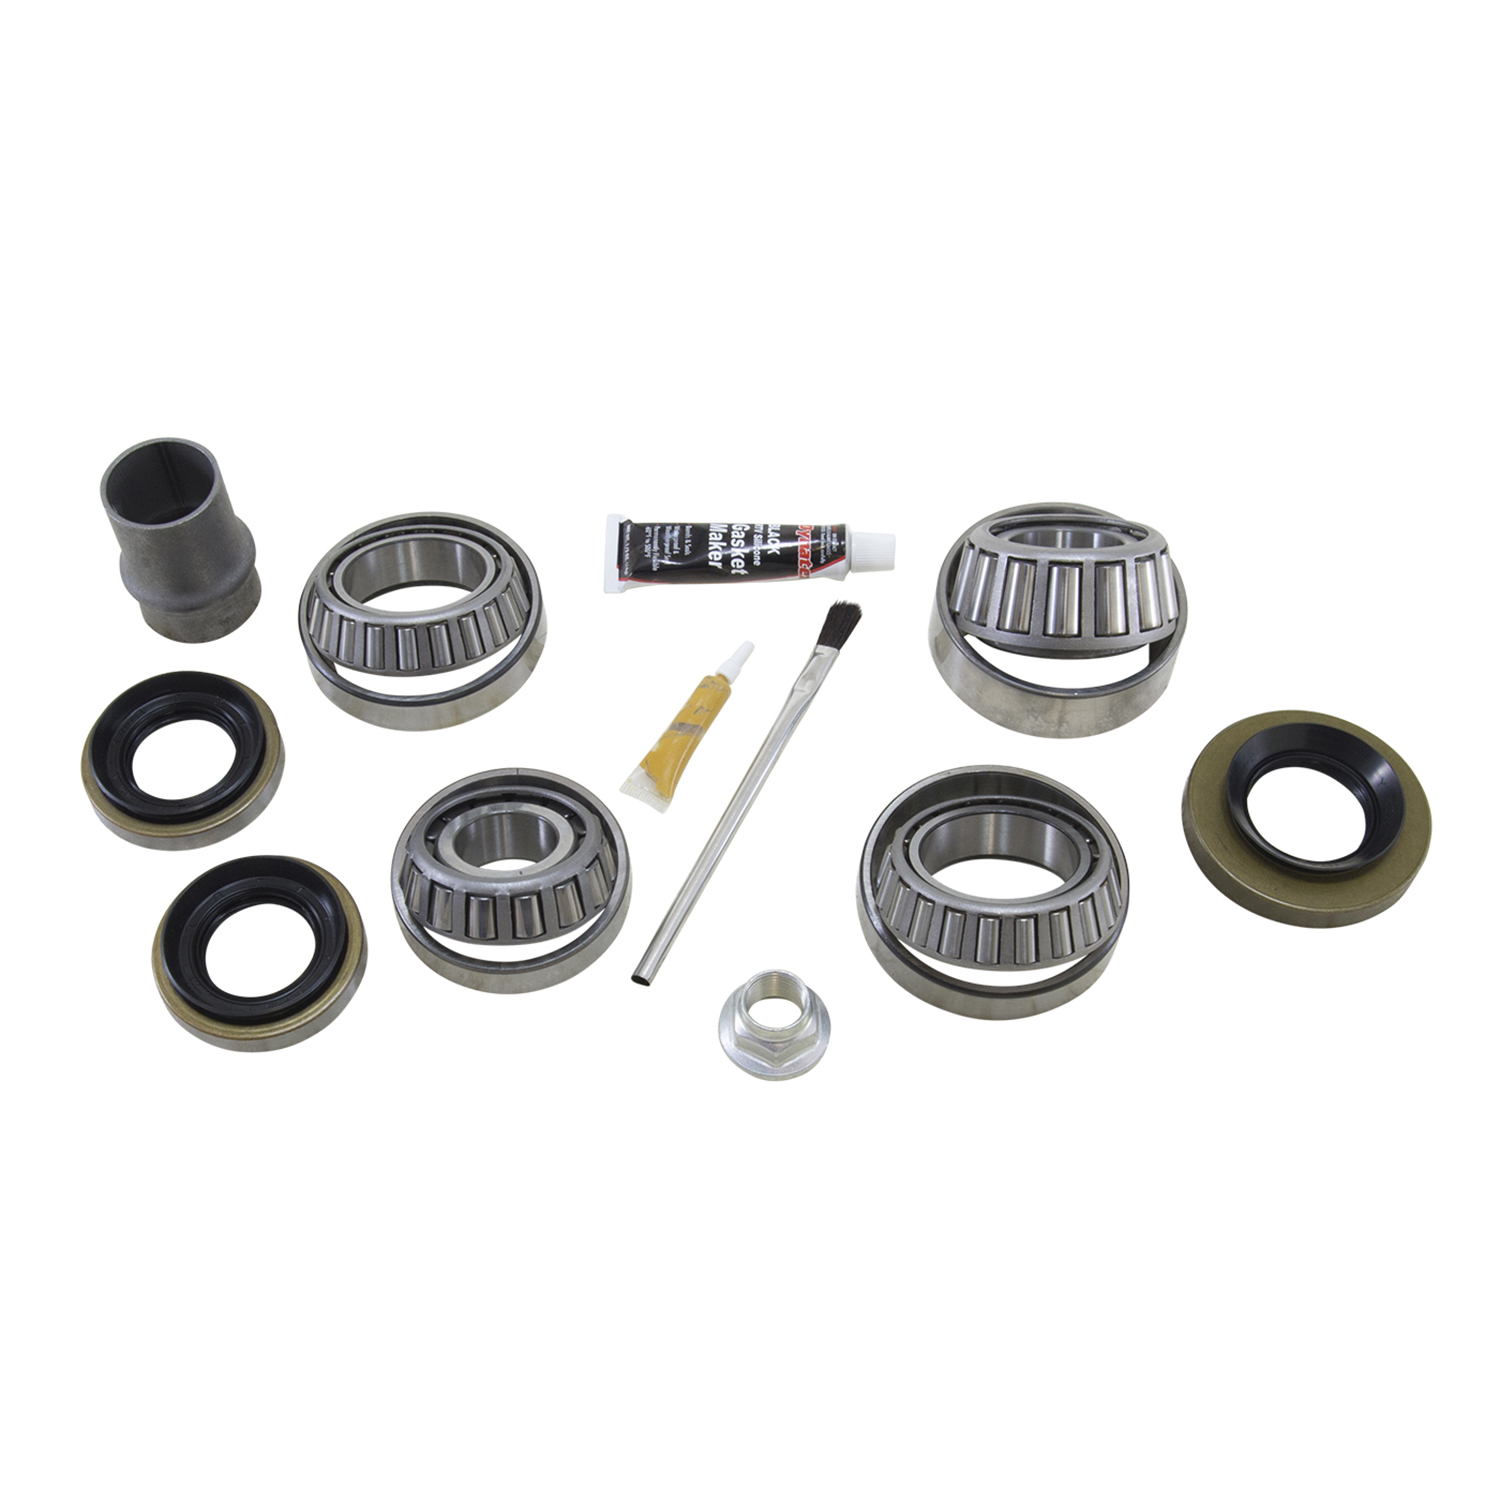 BK T7.5-V6 - Yukon Bearing install kit for Toyota 7.5